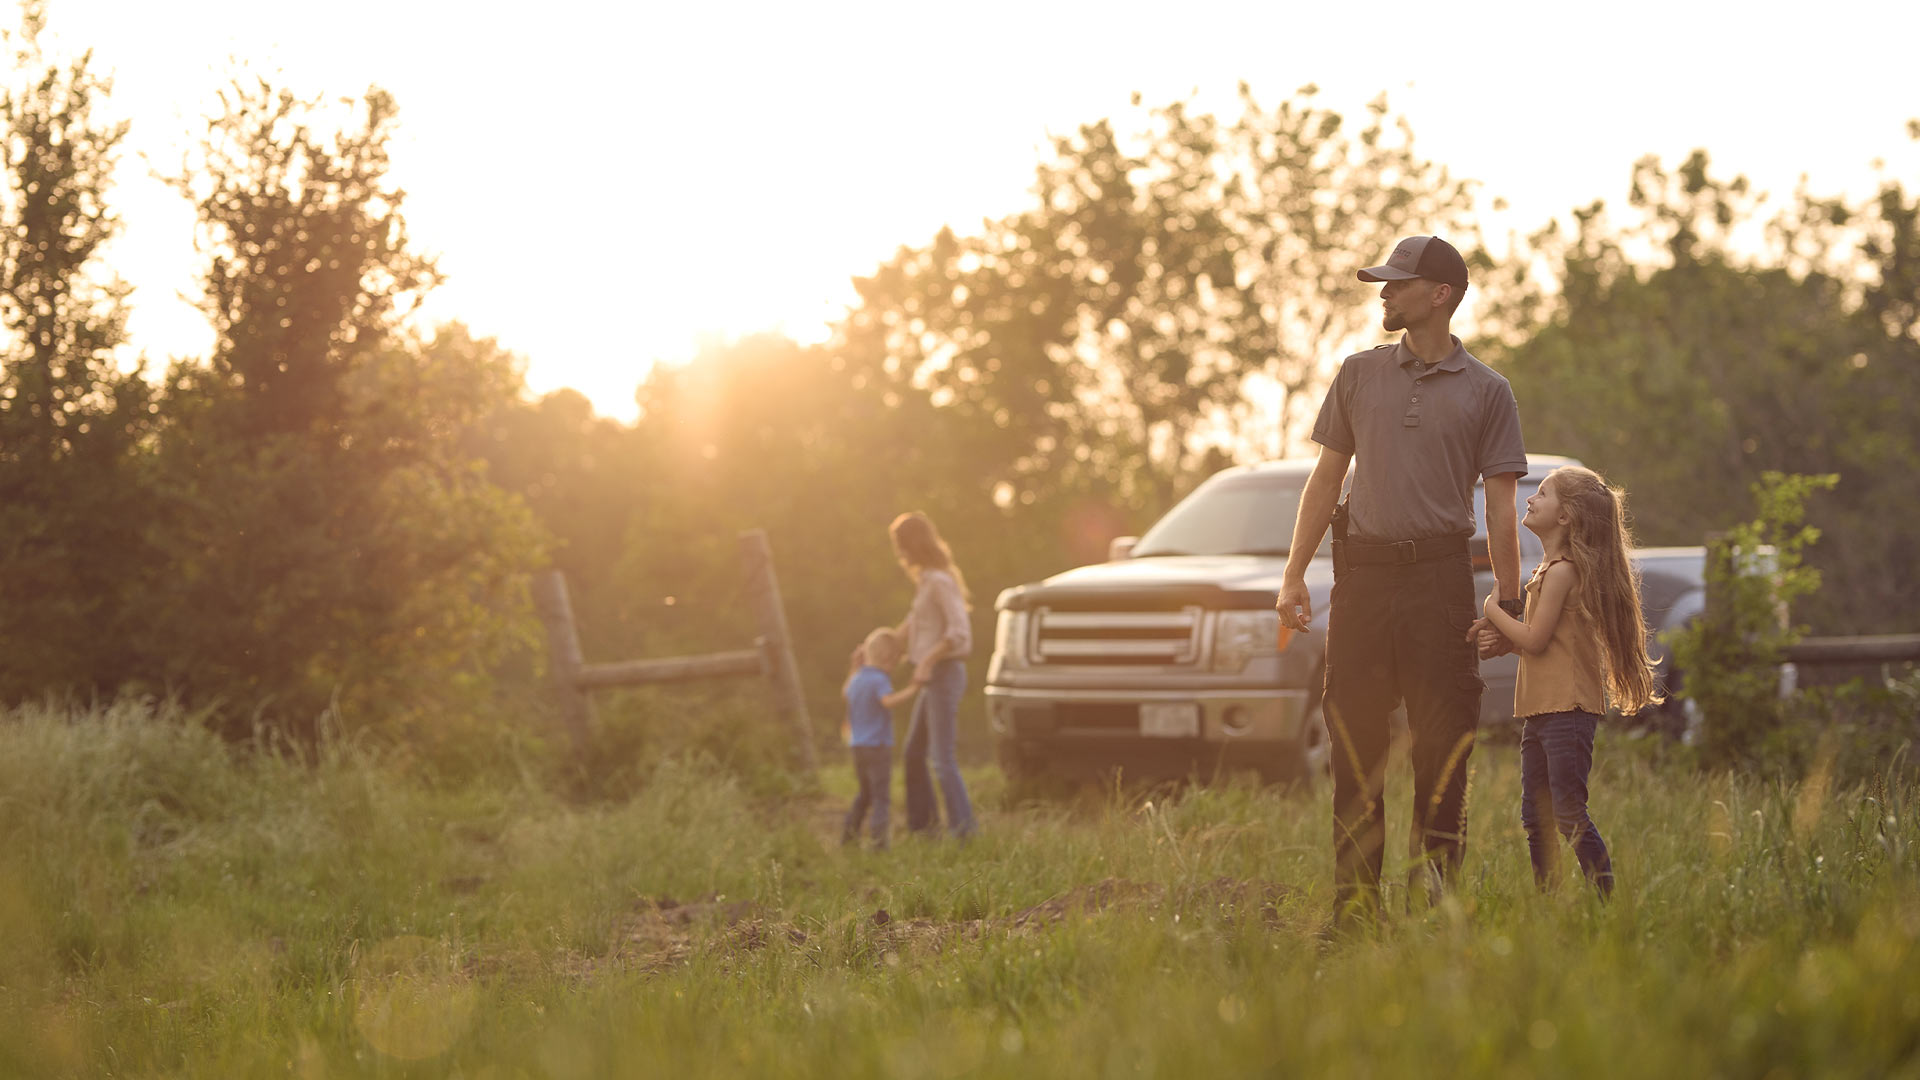 Father, with holstered Staccato handgun, in nature with his family